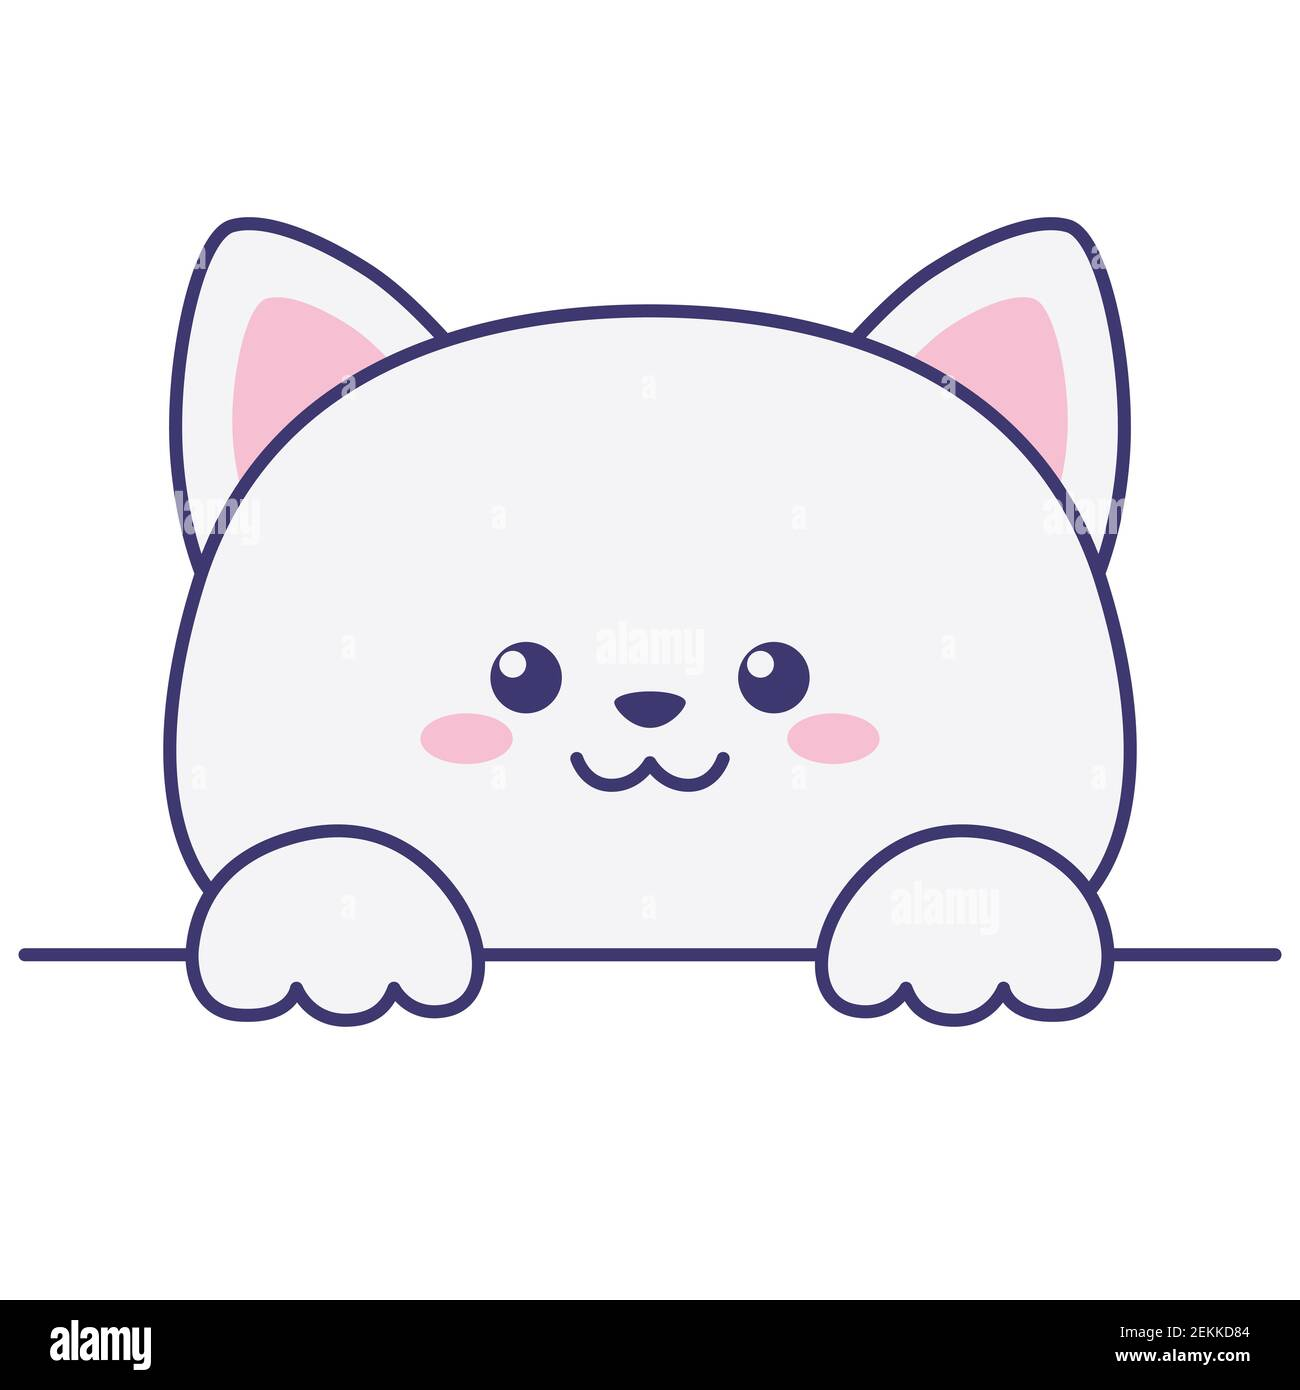 Page 2 Kawaii Kitten Art High Resolution Stock Photography And Images Alamy